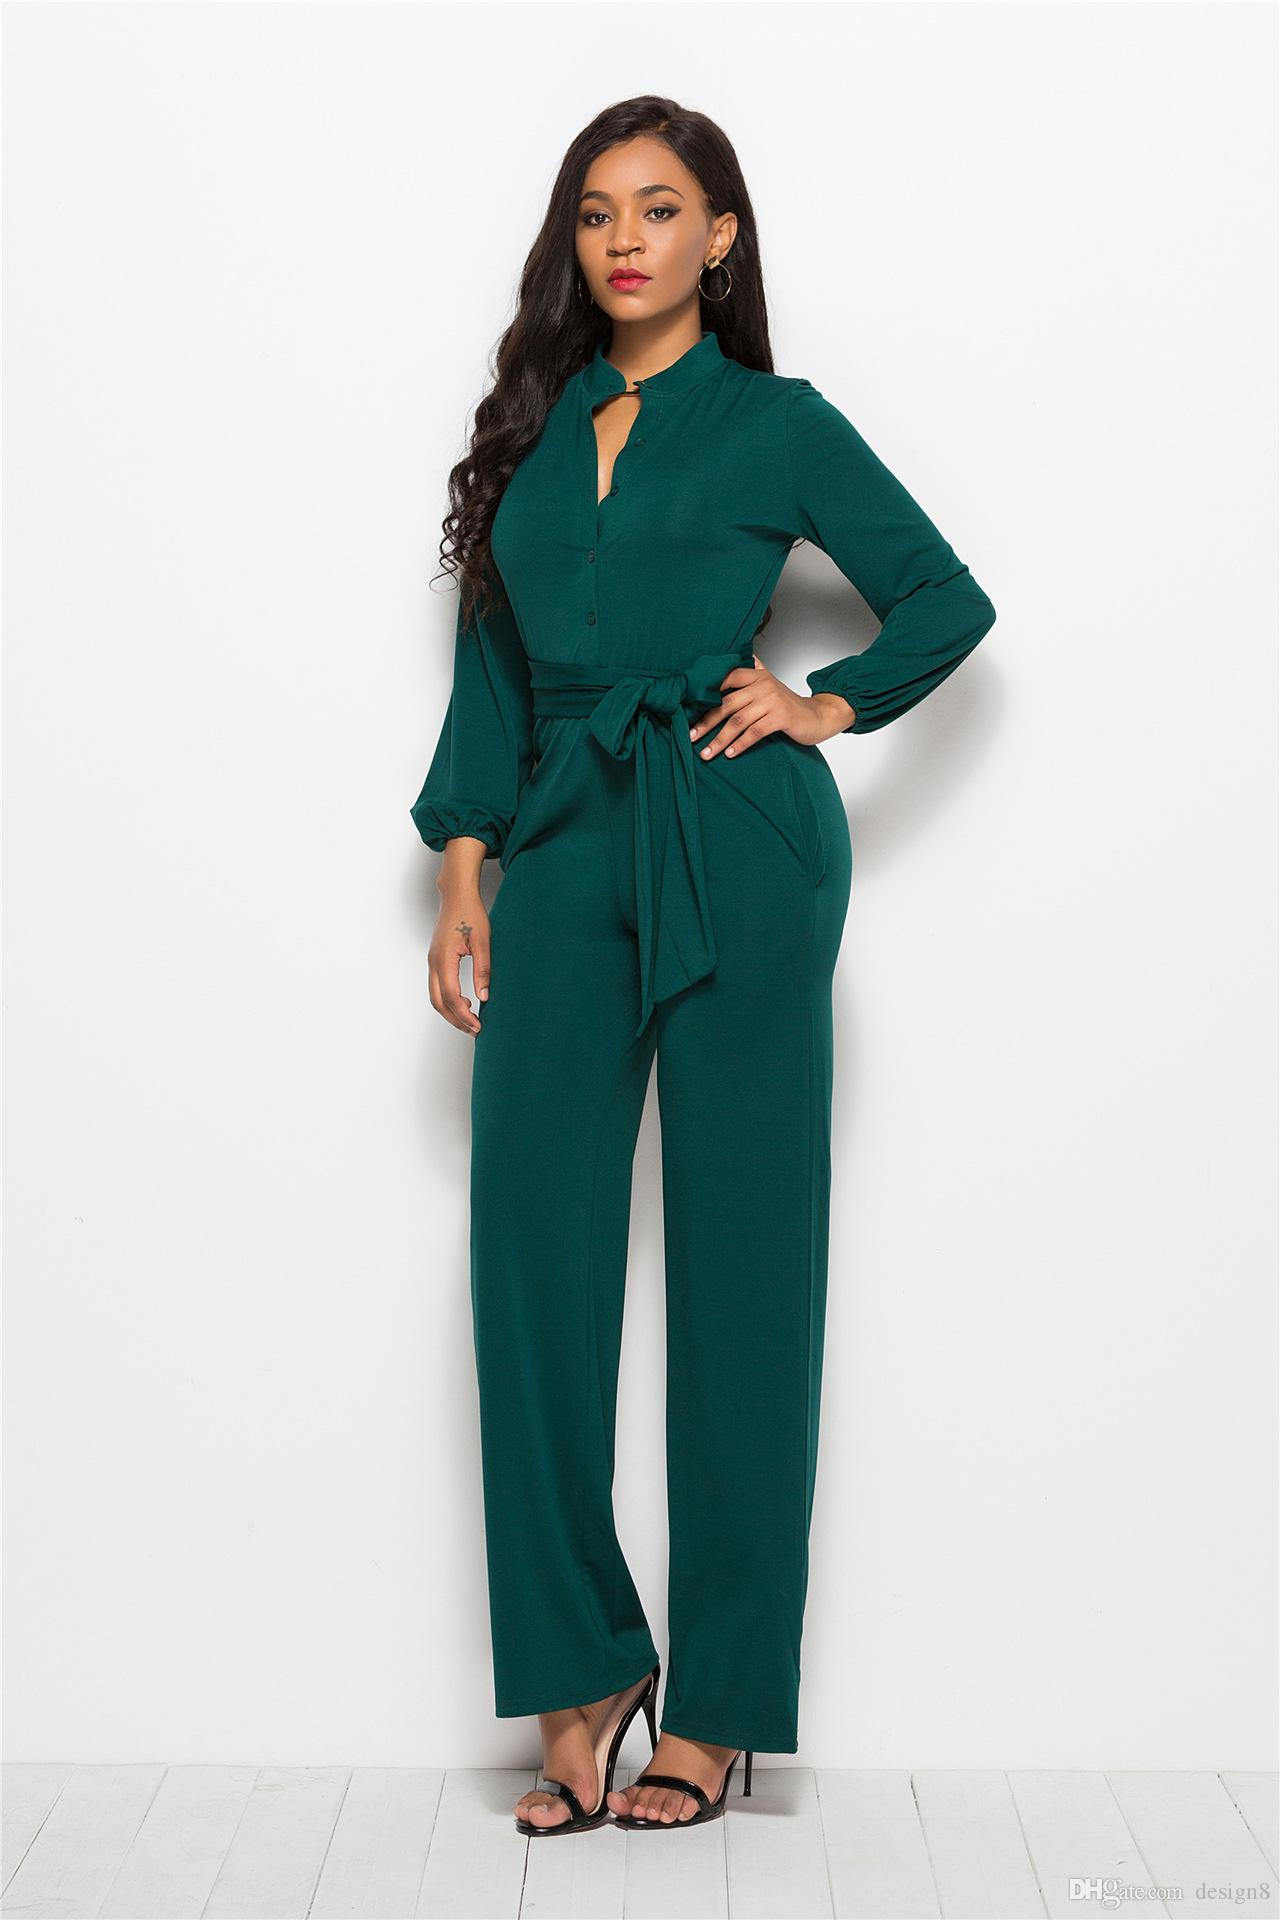 Christmas Jumpsuit Womens.2019 2018 Christmas New Design Women S Spring And Autumn Long Section Jumpsuit Fashion Elegant Simple Overalls Jumpsuit From Design8 32 88